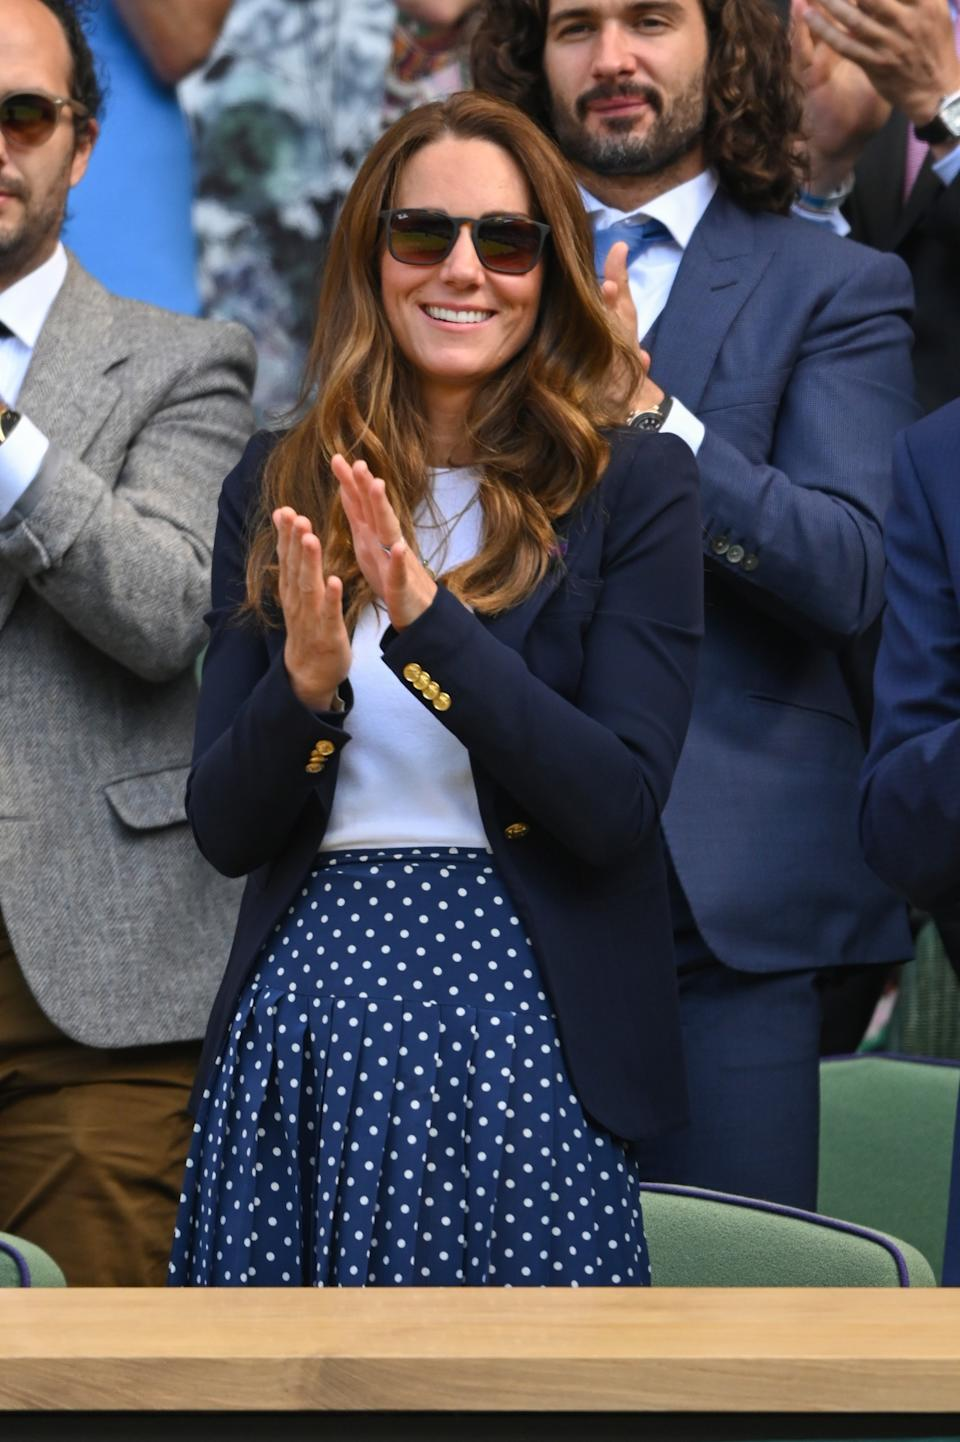 Kate Middleton wore her Ray-Bans